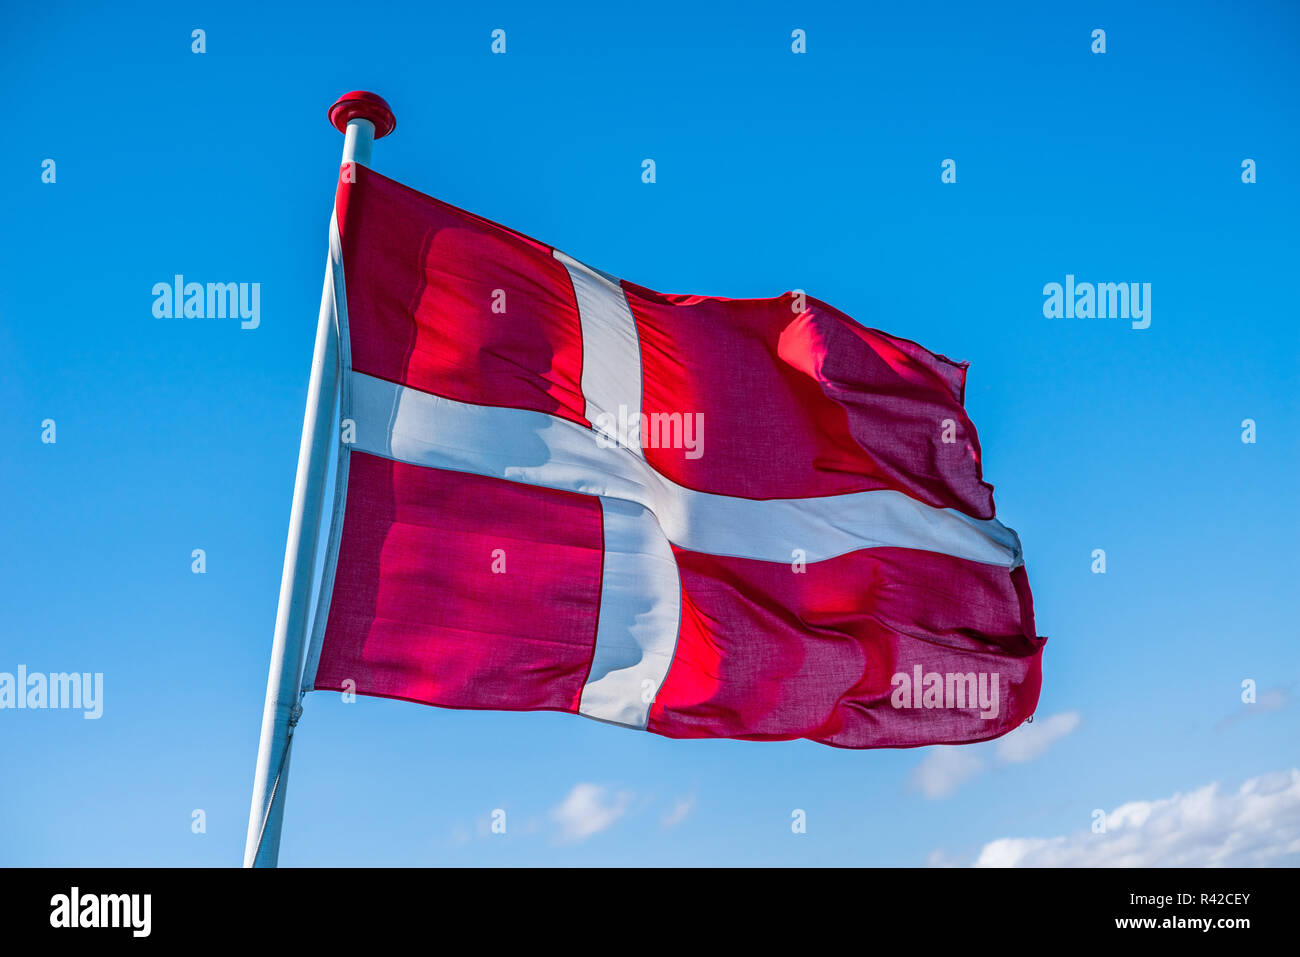 Danish flag in the wind - Stock Image